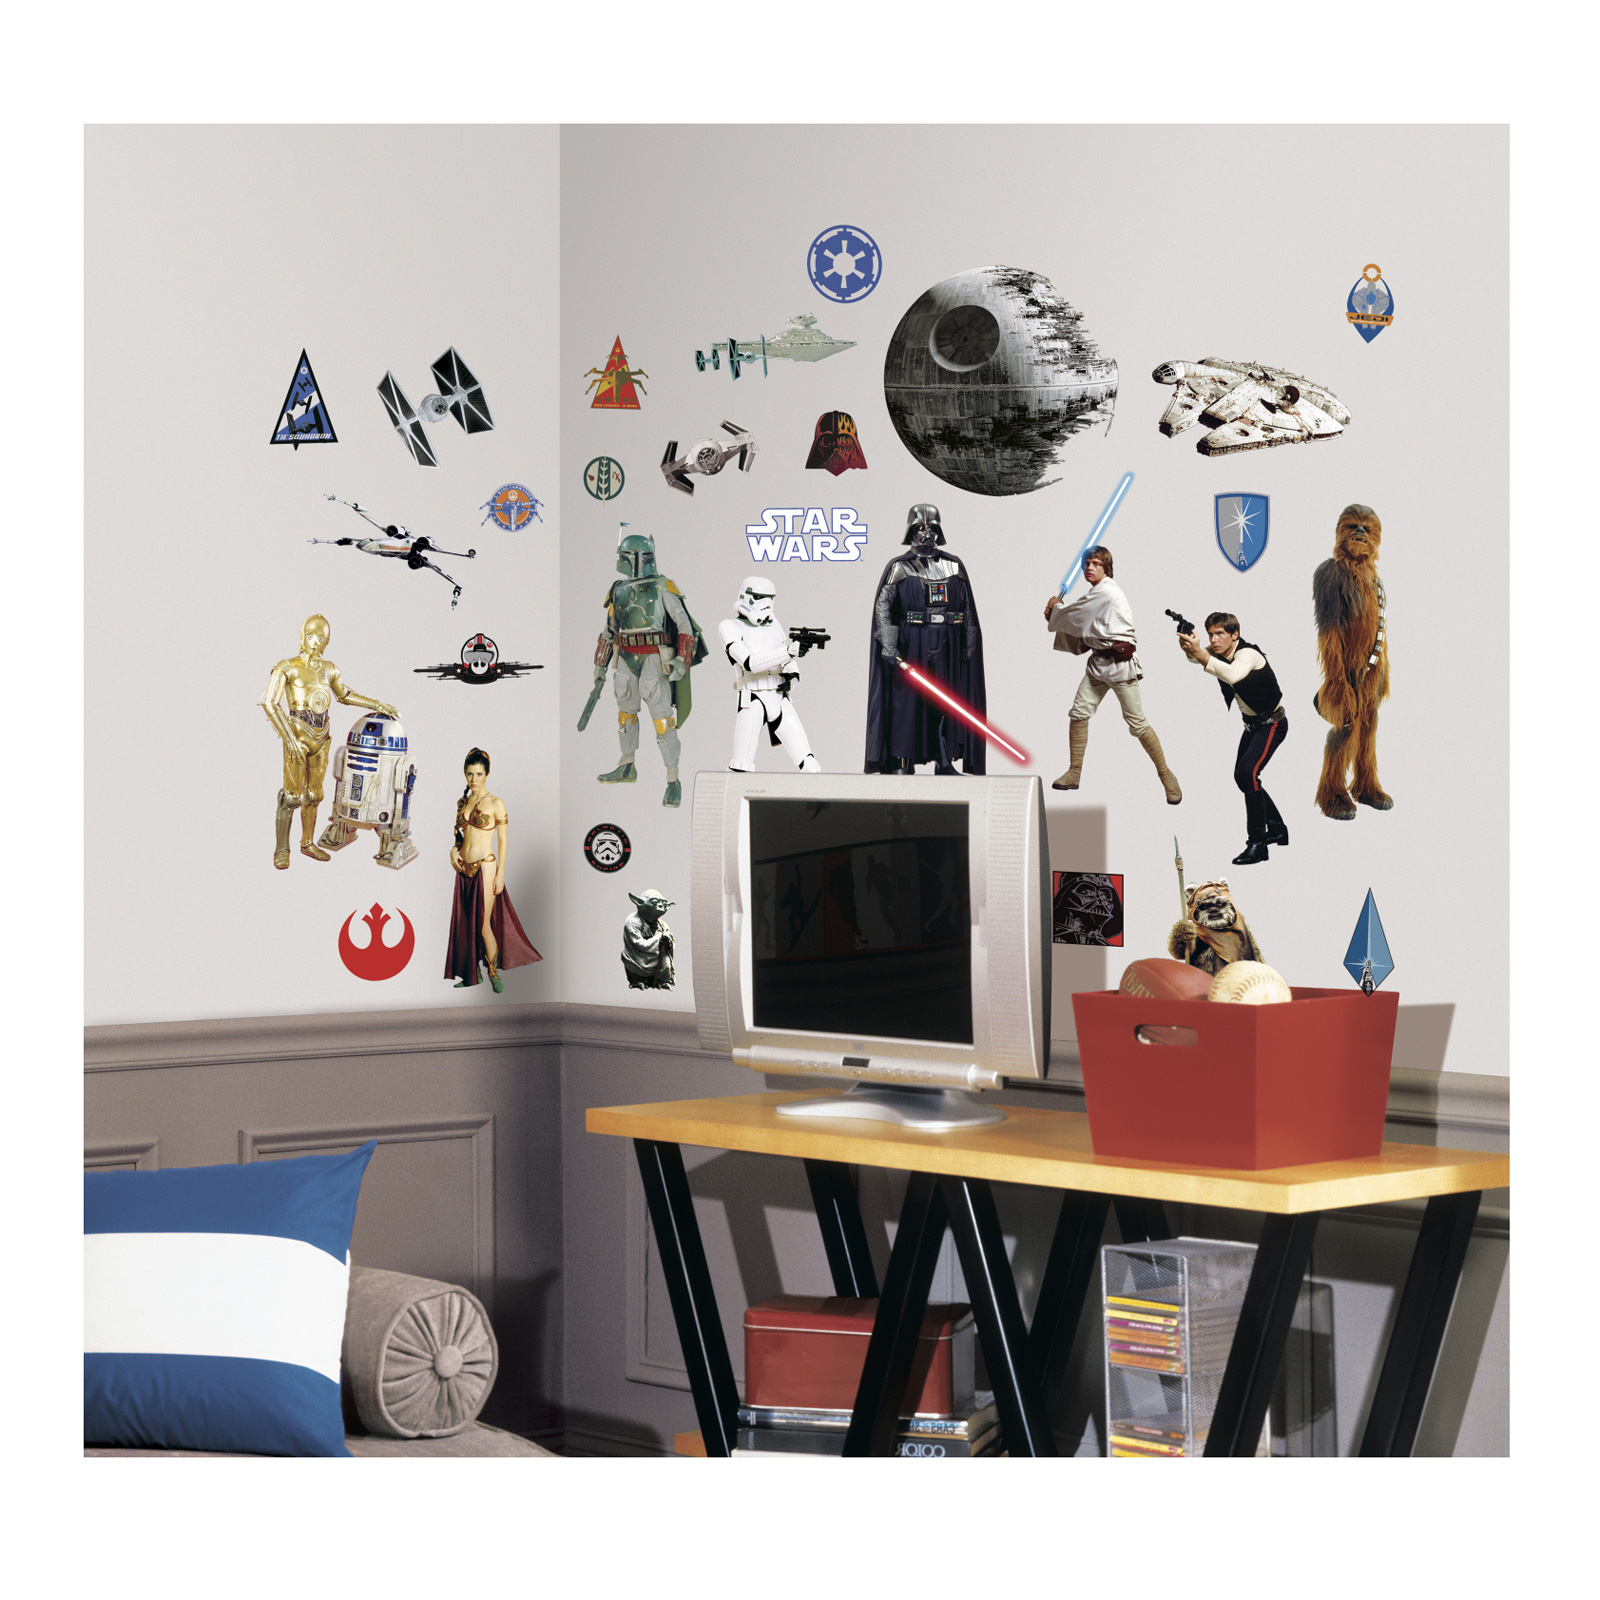 Star Wars Classic Wall Decals by Stardom Specialty in USA